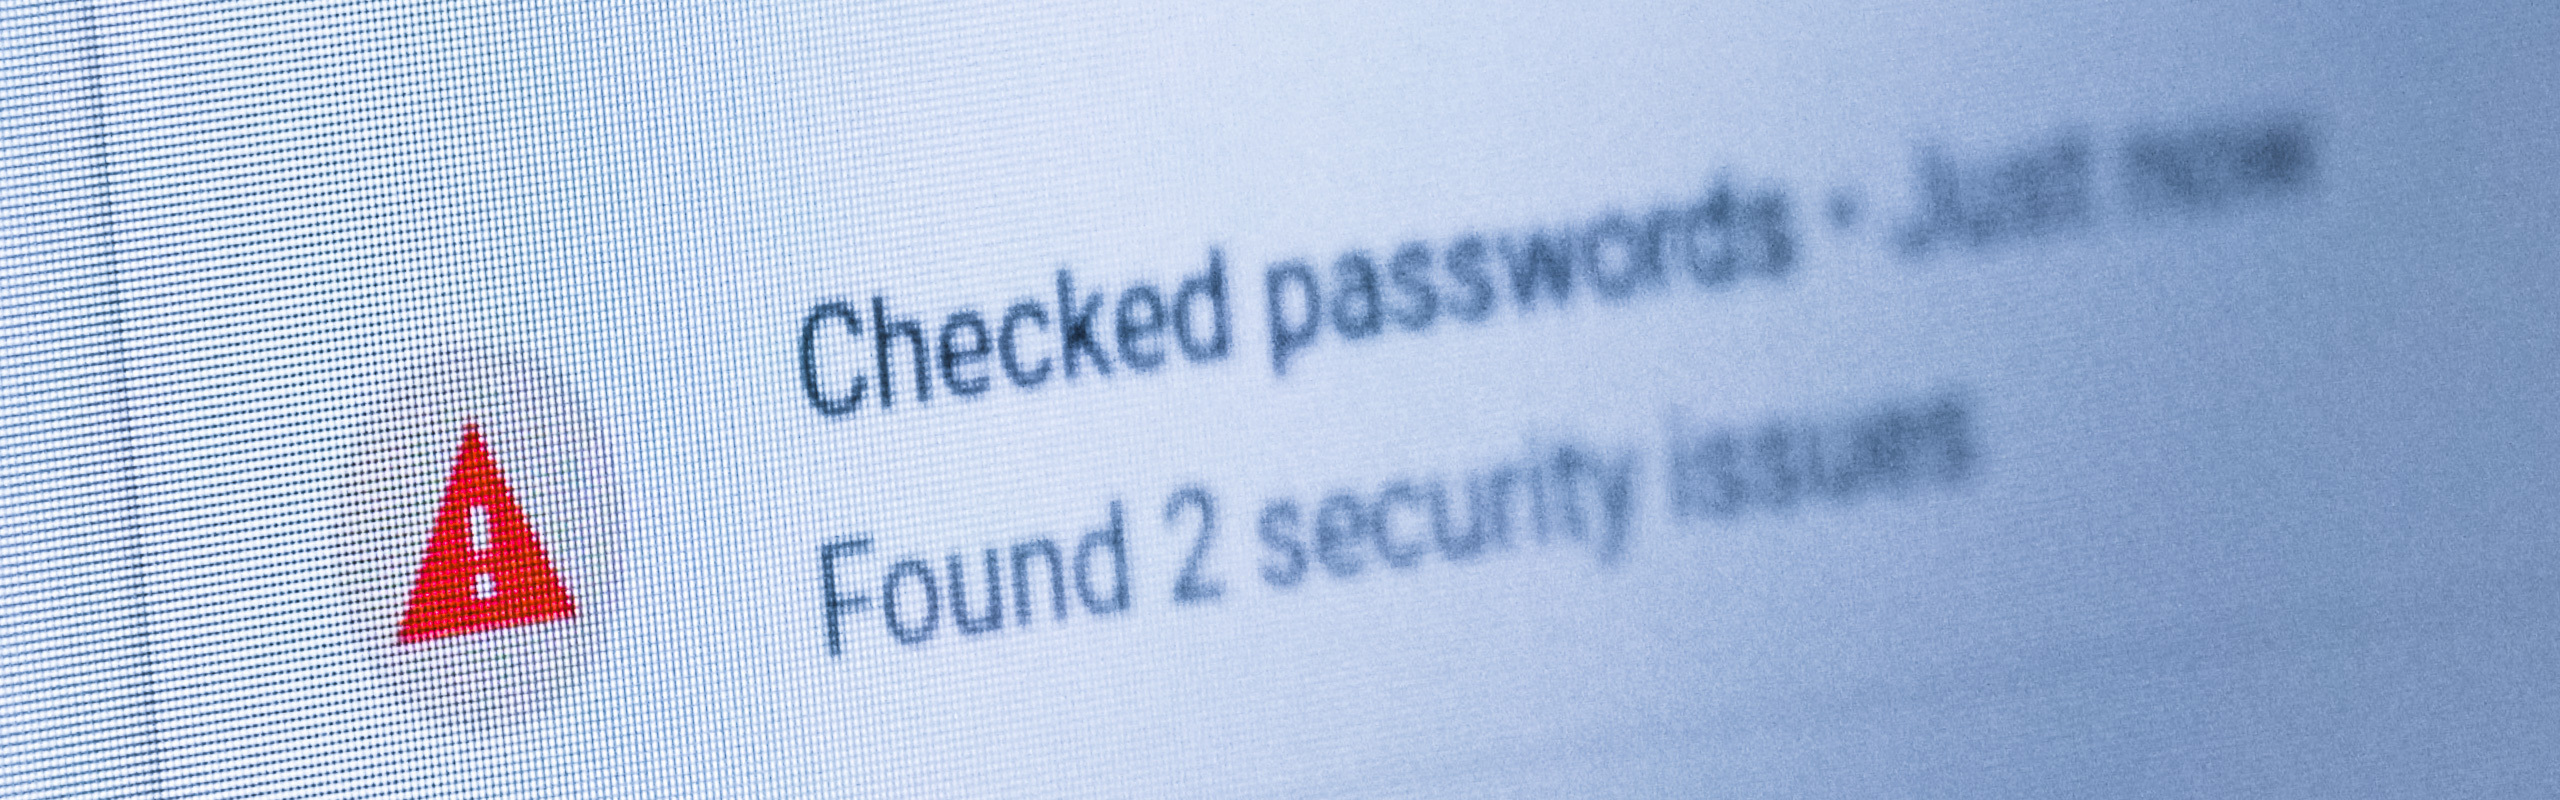 Password managers with warnings – background